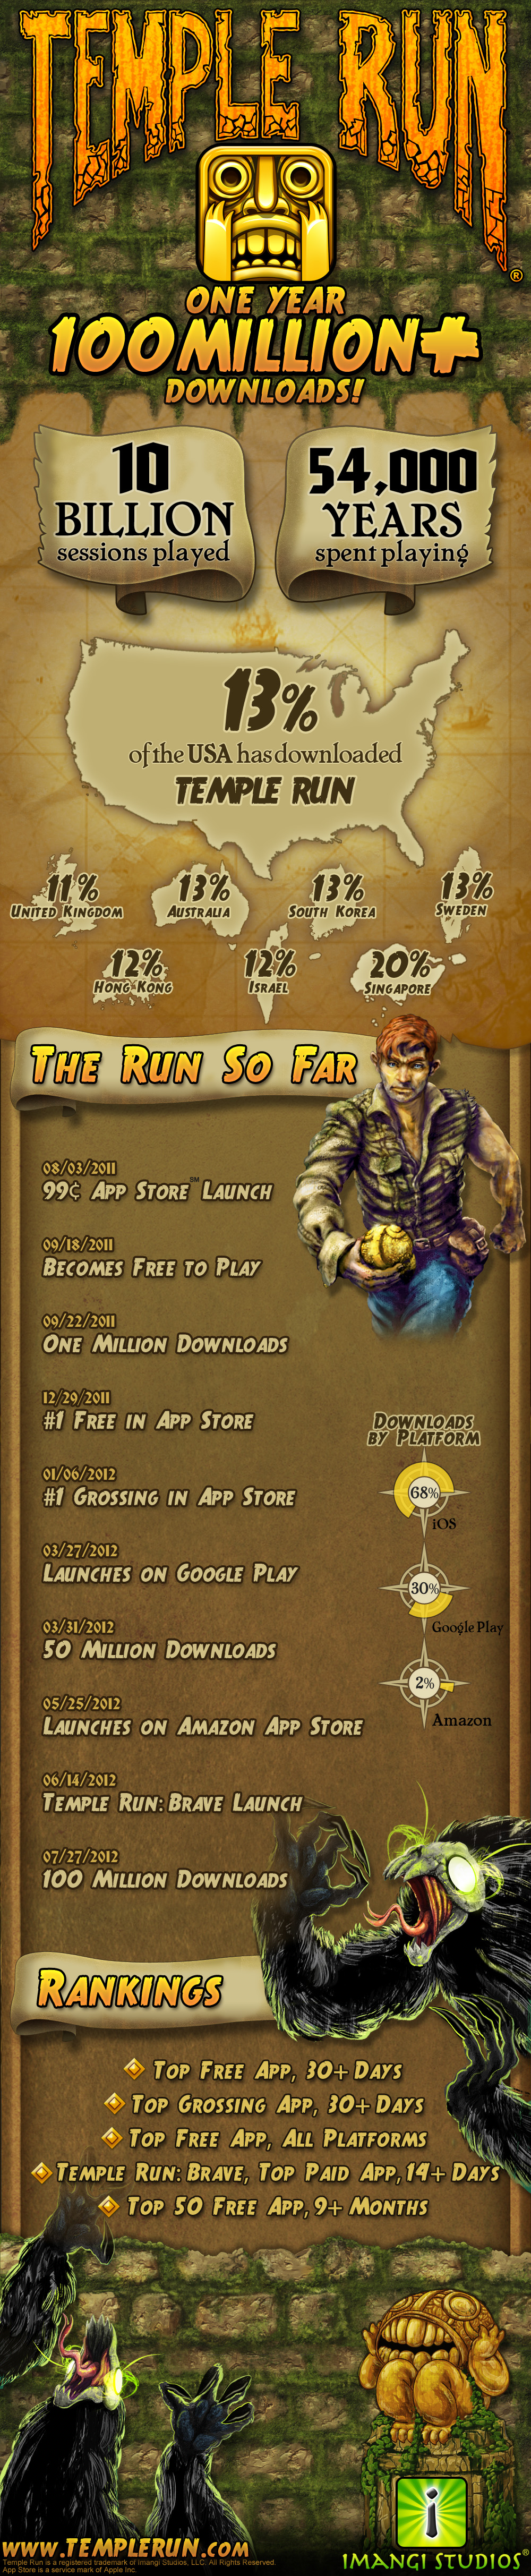 How Popular Is the Game Temple Run?